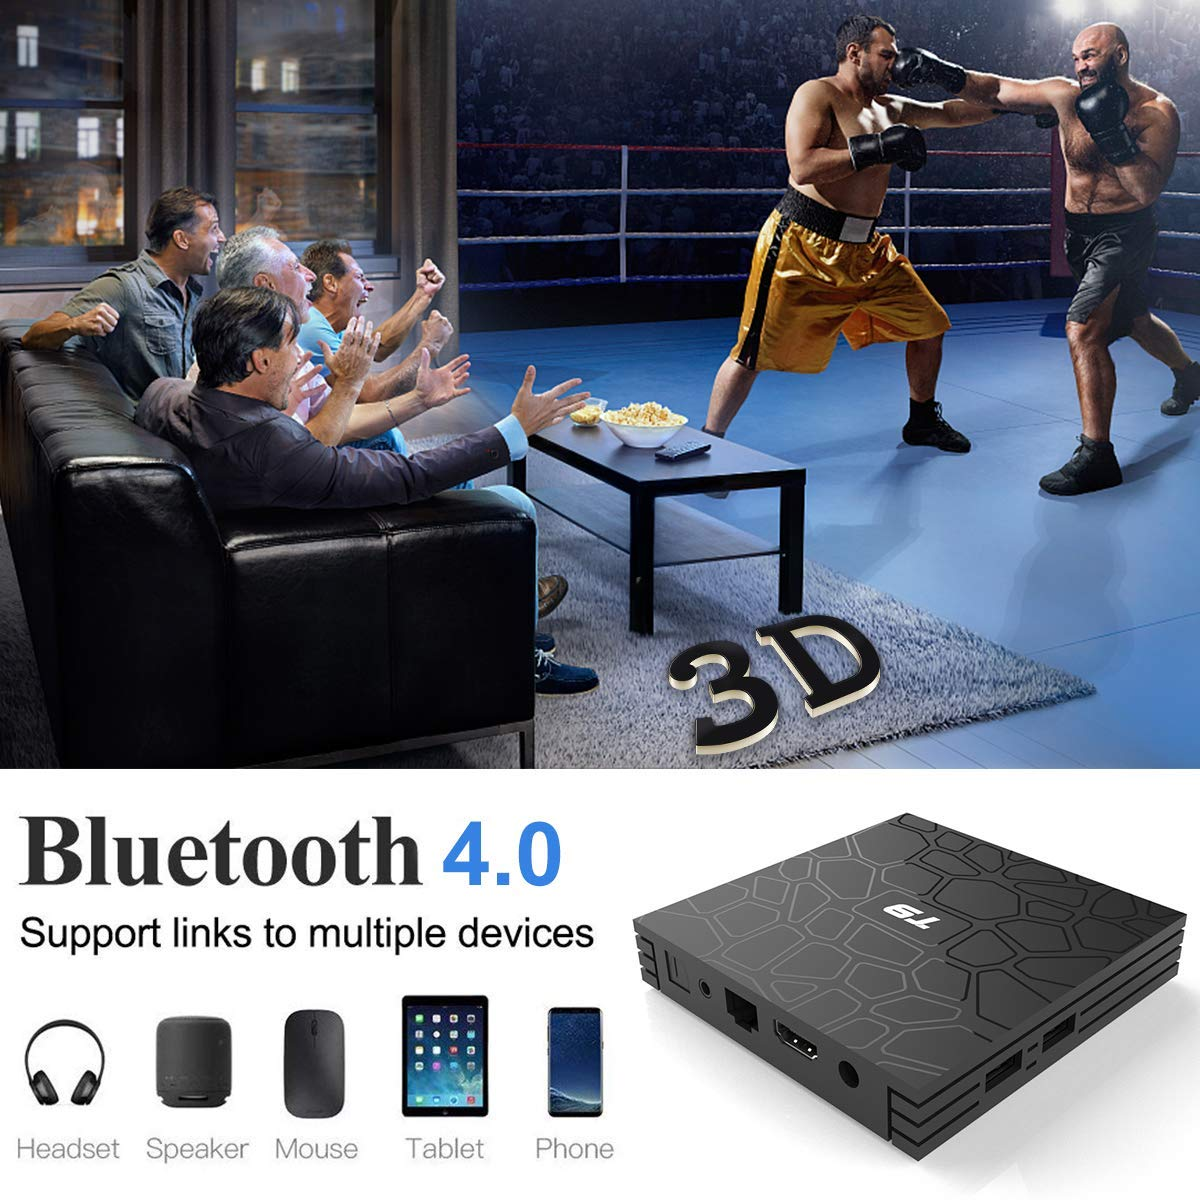 2018 T9 tv box android 8,1 WIFI 4 GB 64 GB TV Box Bluetooth 4,0 RK3328 Quad Core 4G 32G caja de tv inteligente Set Top android 8,1 Caja 5g - 3